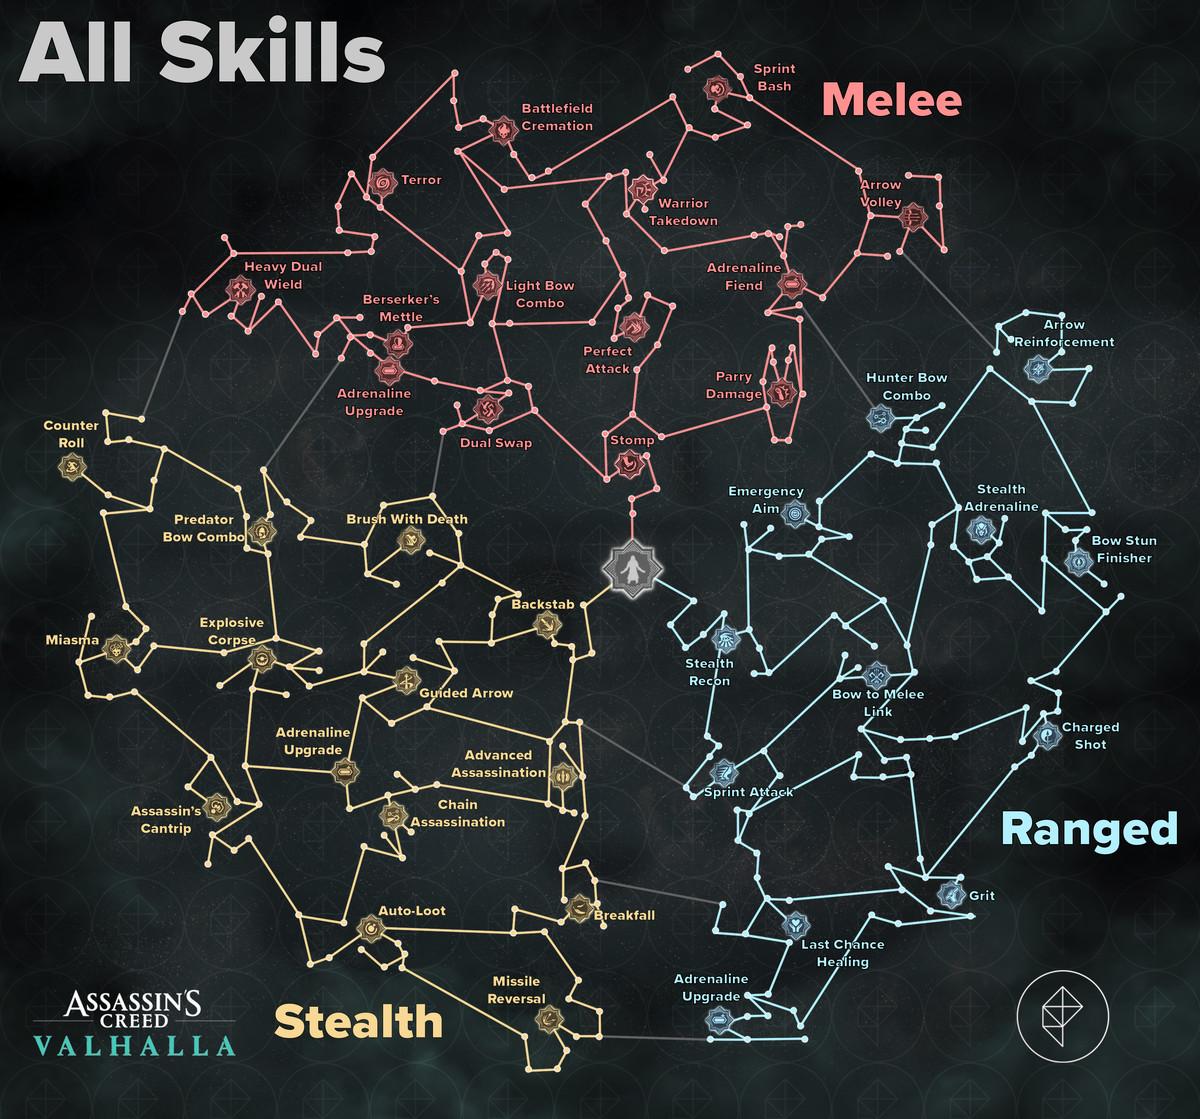 Assassin's Creed Valhalla complete skill tree